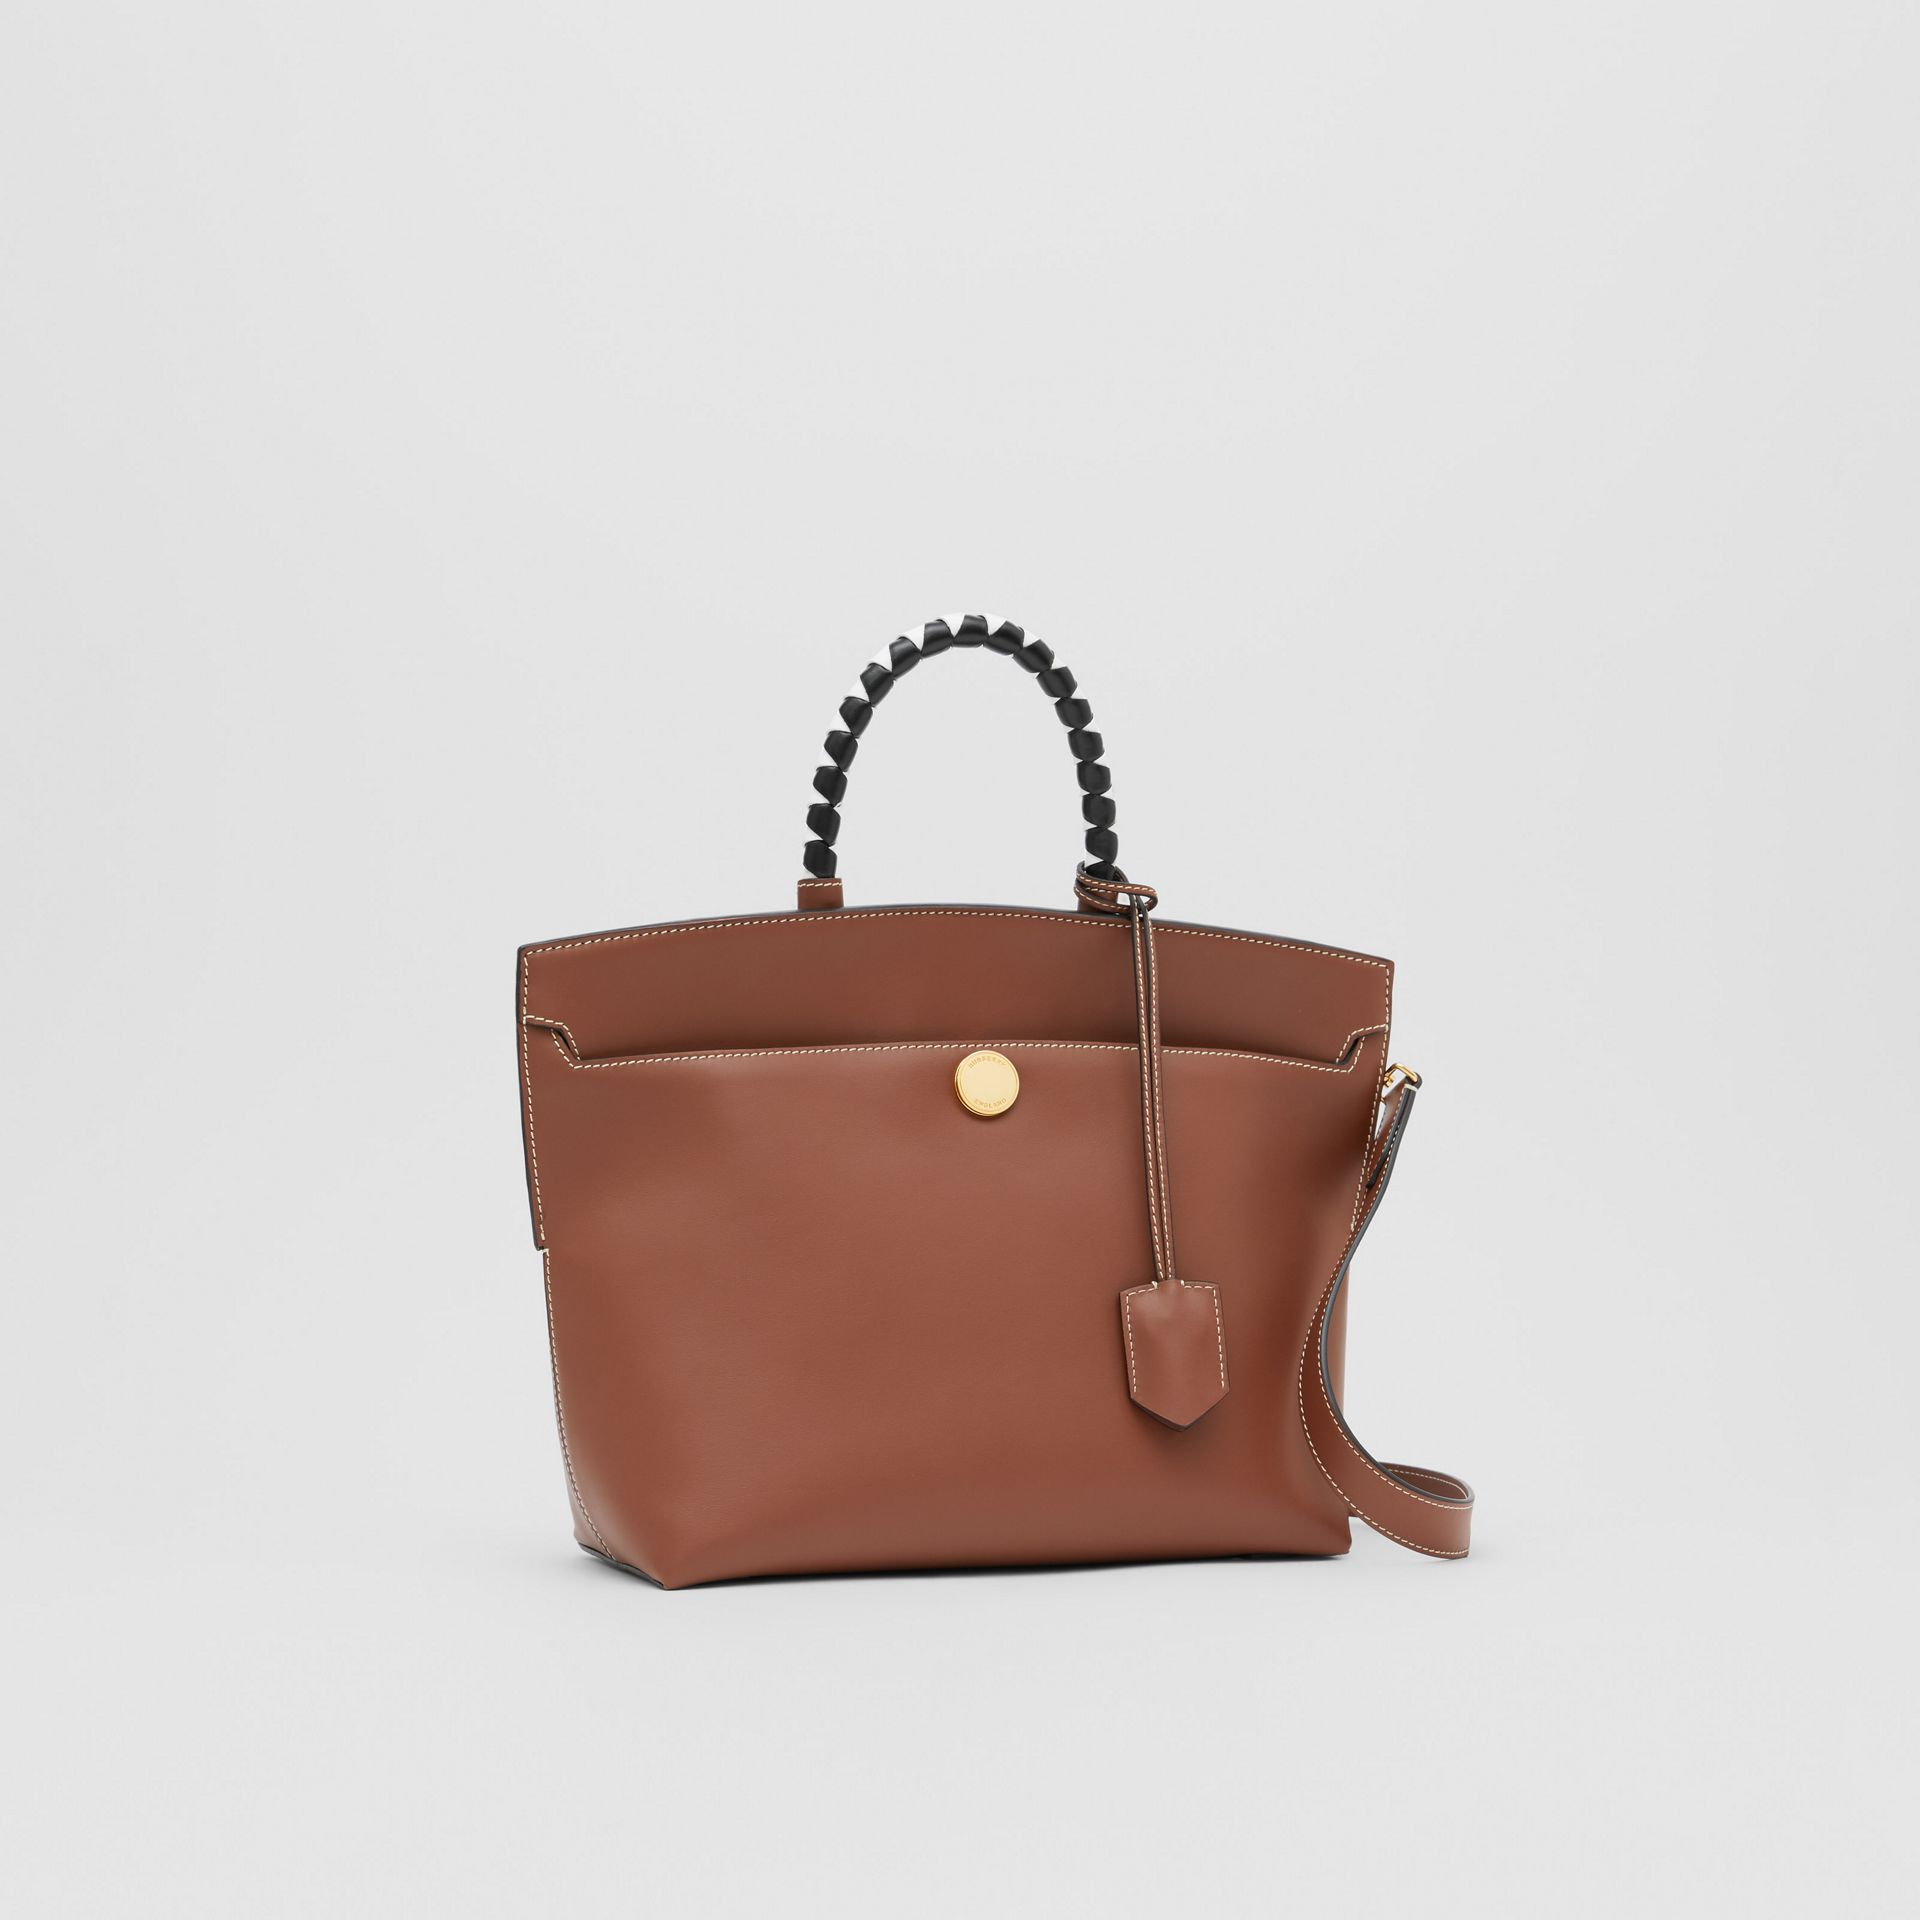 Small Leather Society Top Handle Bag in Tan - Women | Burberry - gallery image 6